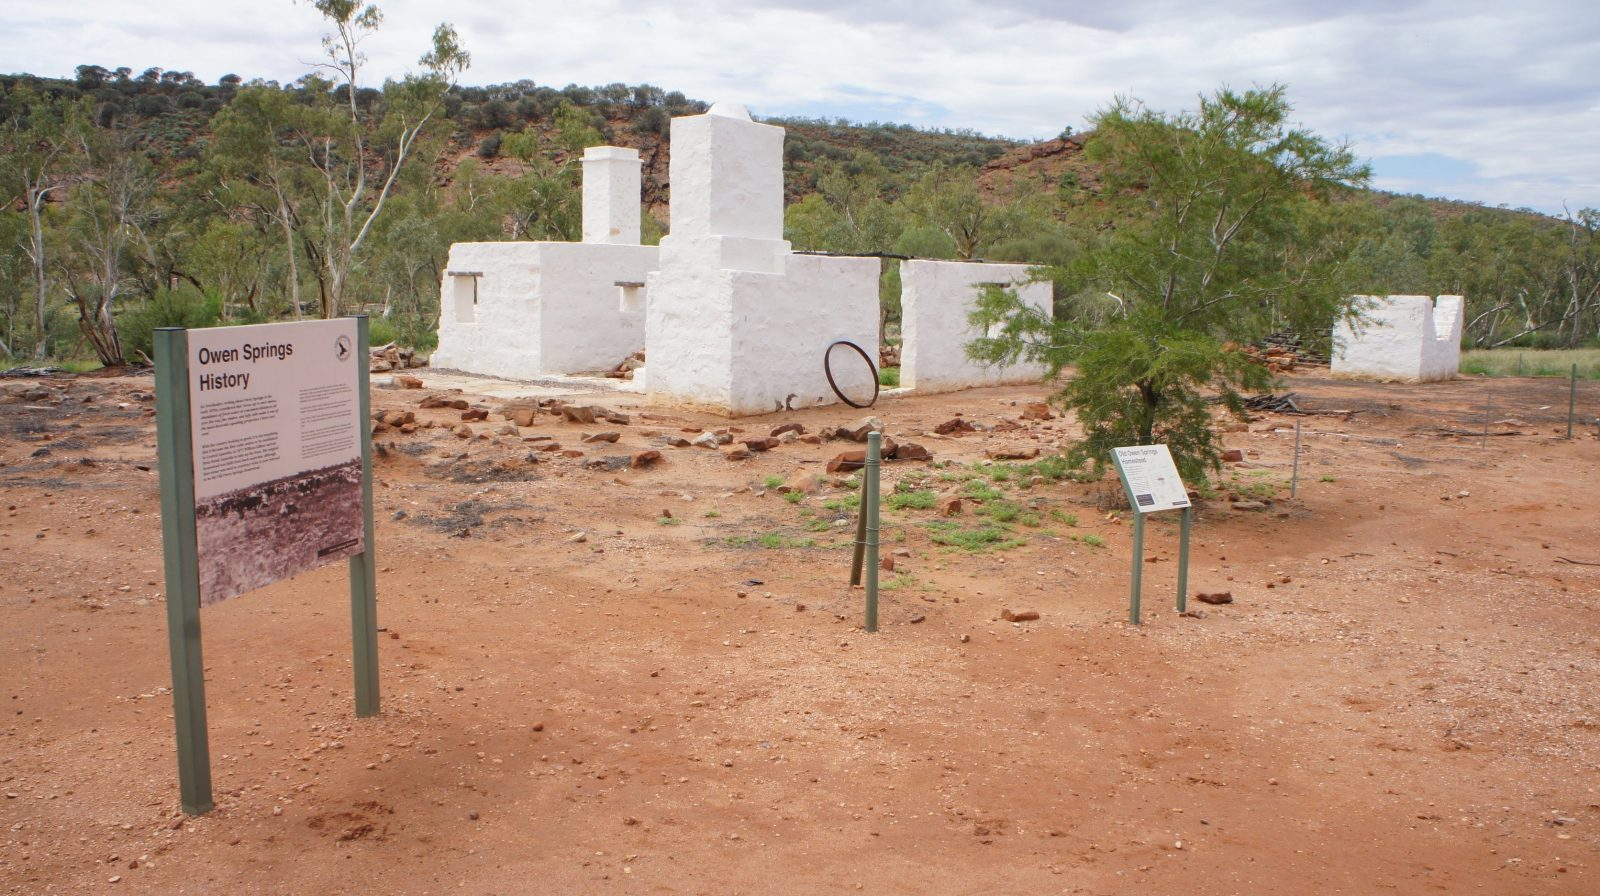 Old Owen Springs Homestead site, showing some interpretive signage and wire fencing around buildings